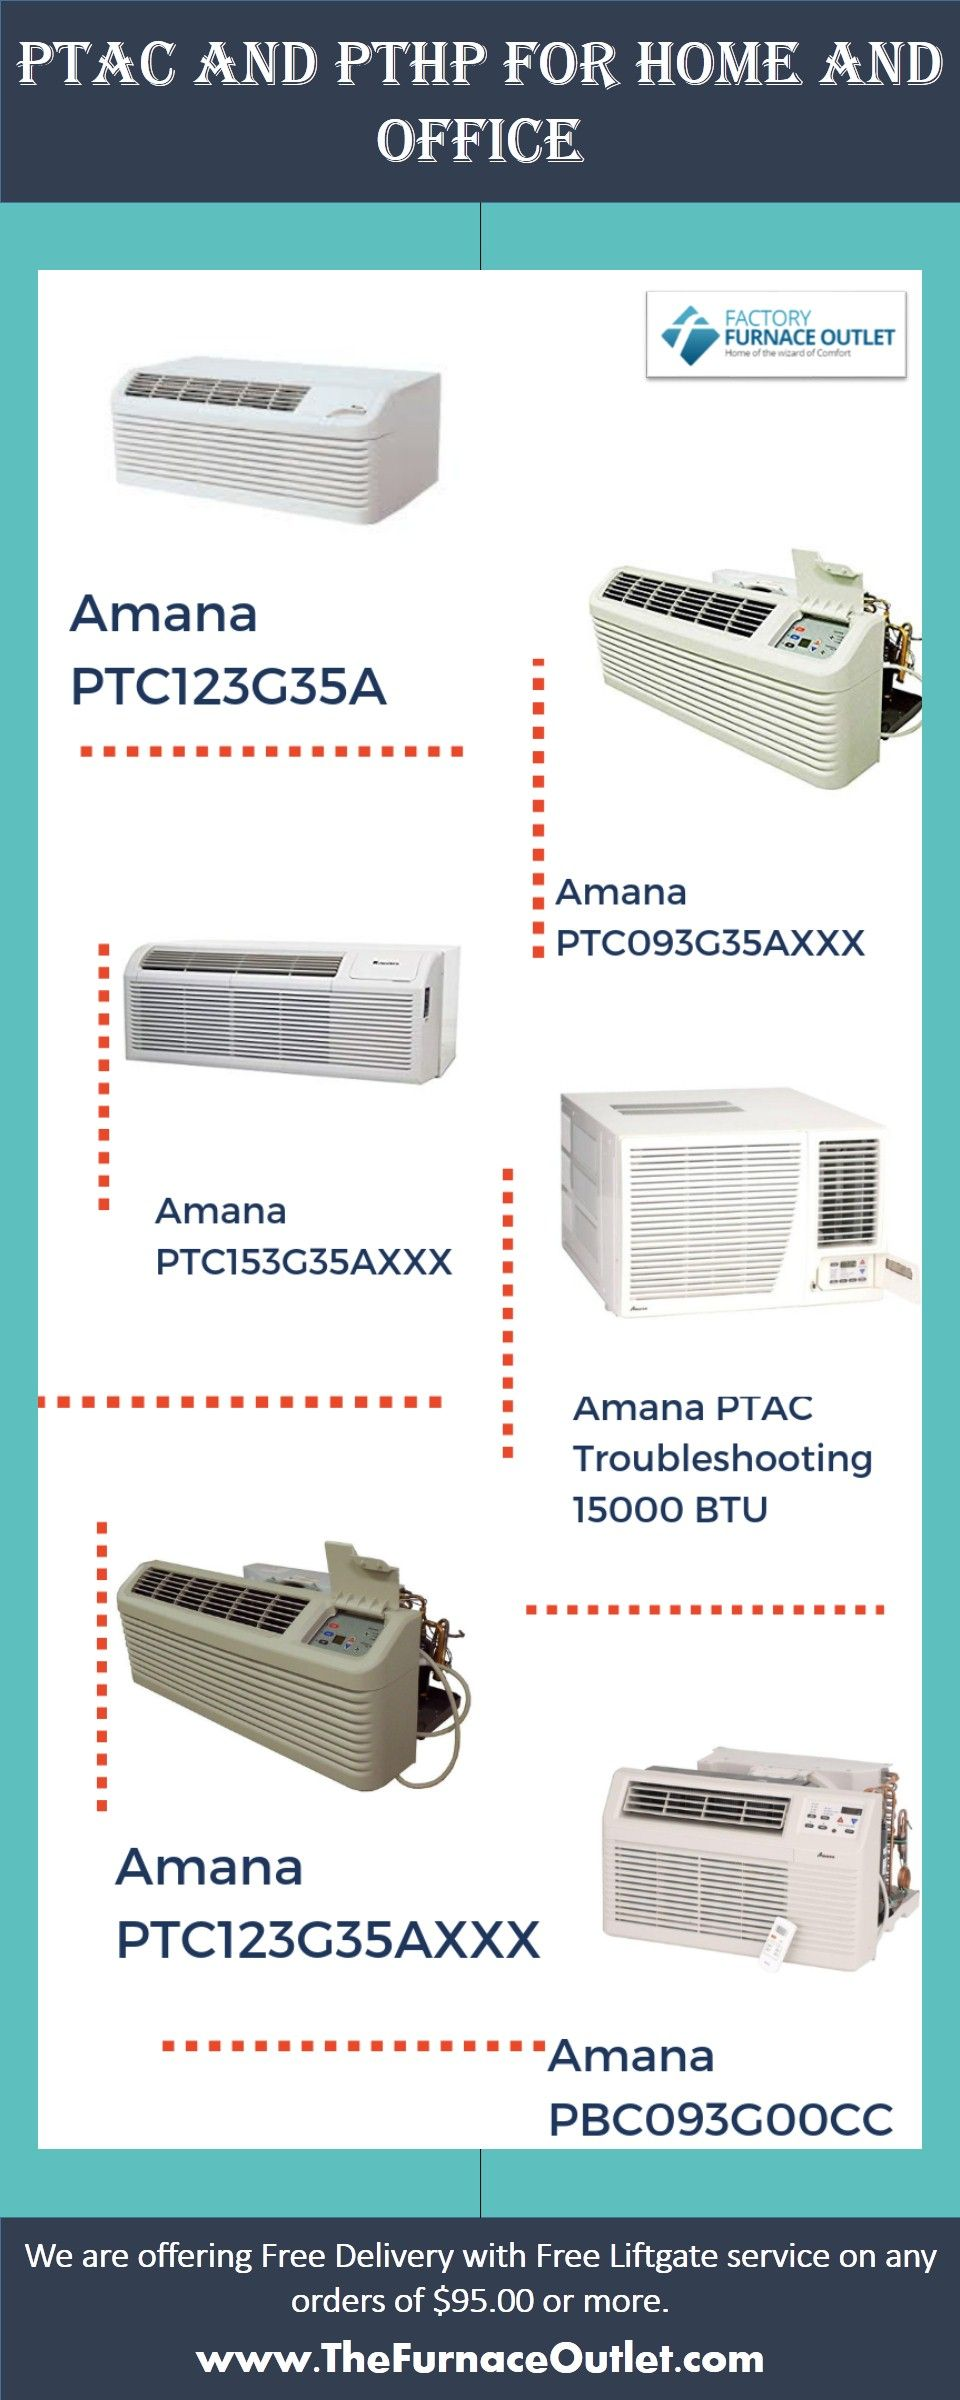 Ptac And Pthp For Home And Office Furnace Goodman Furnace Outlet